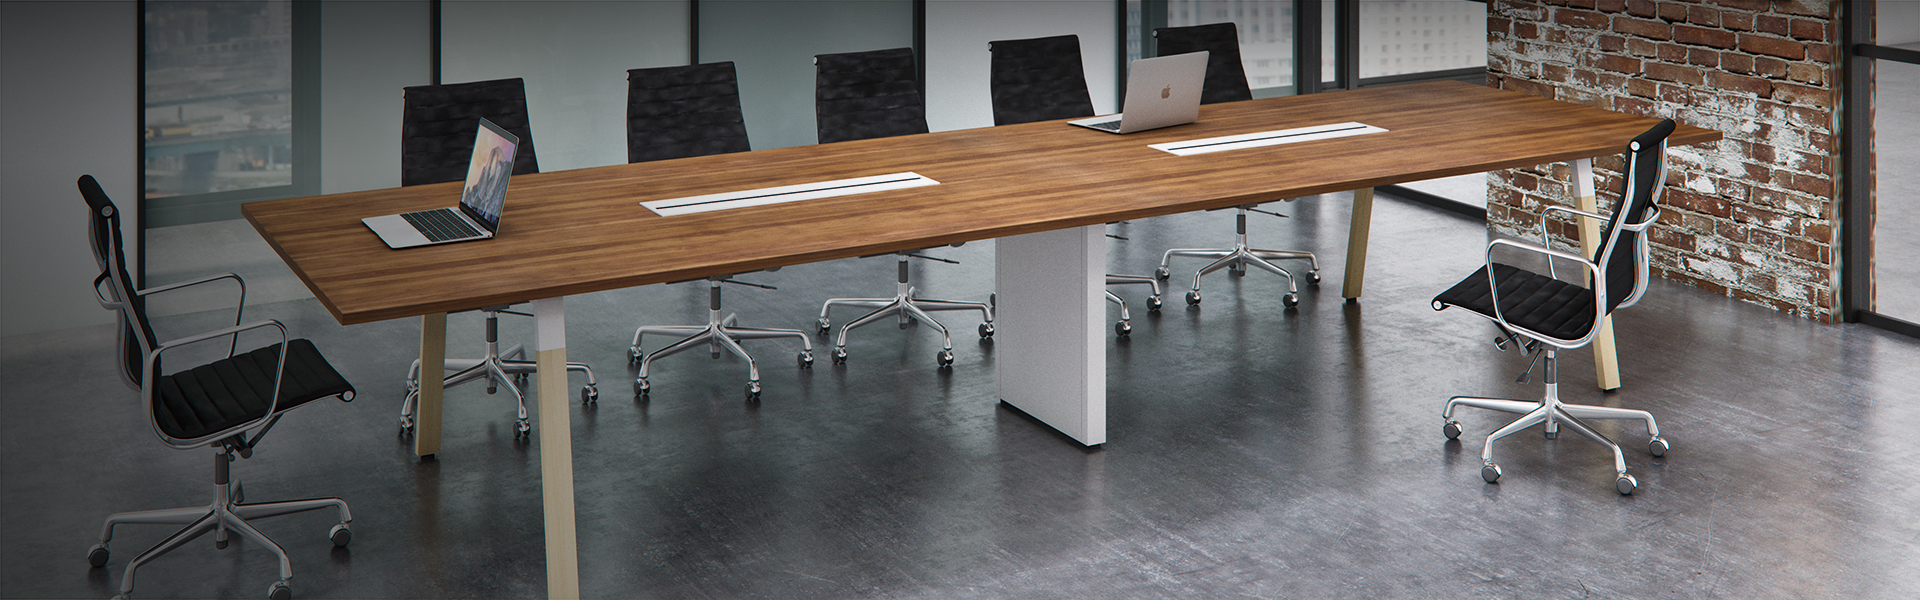 MAZINGER Conference Table